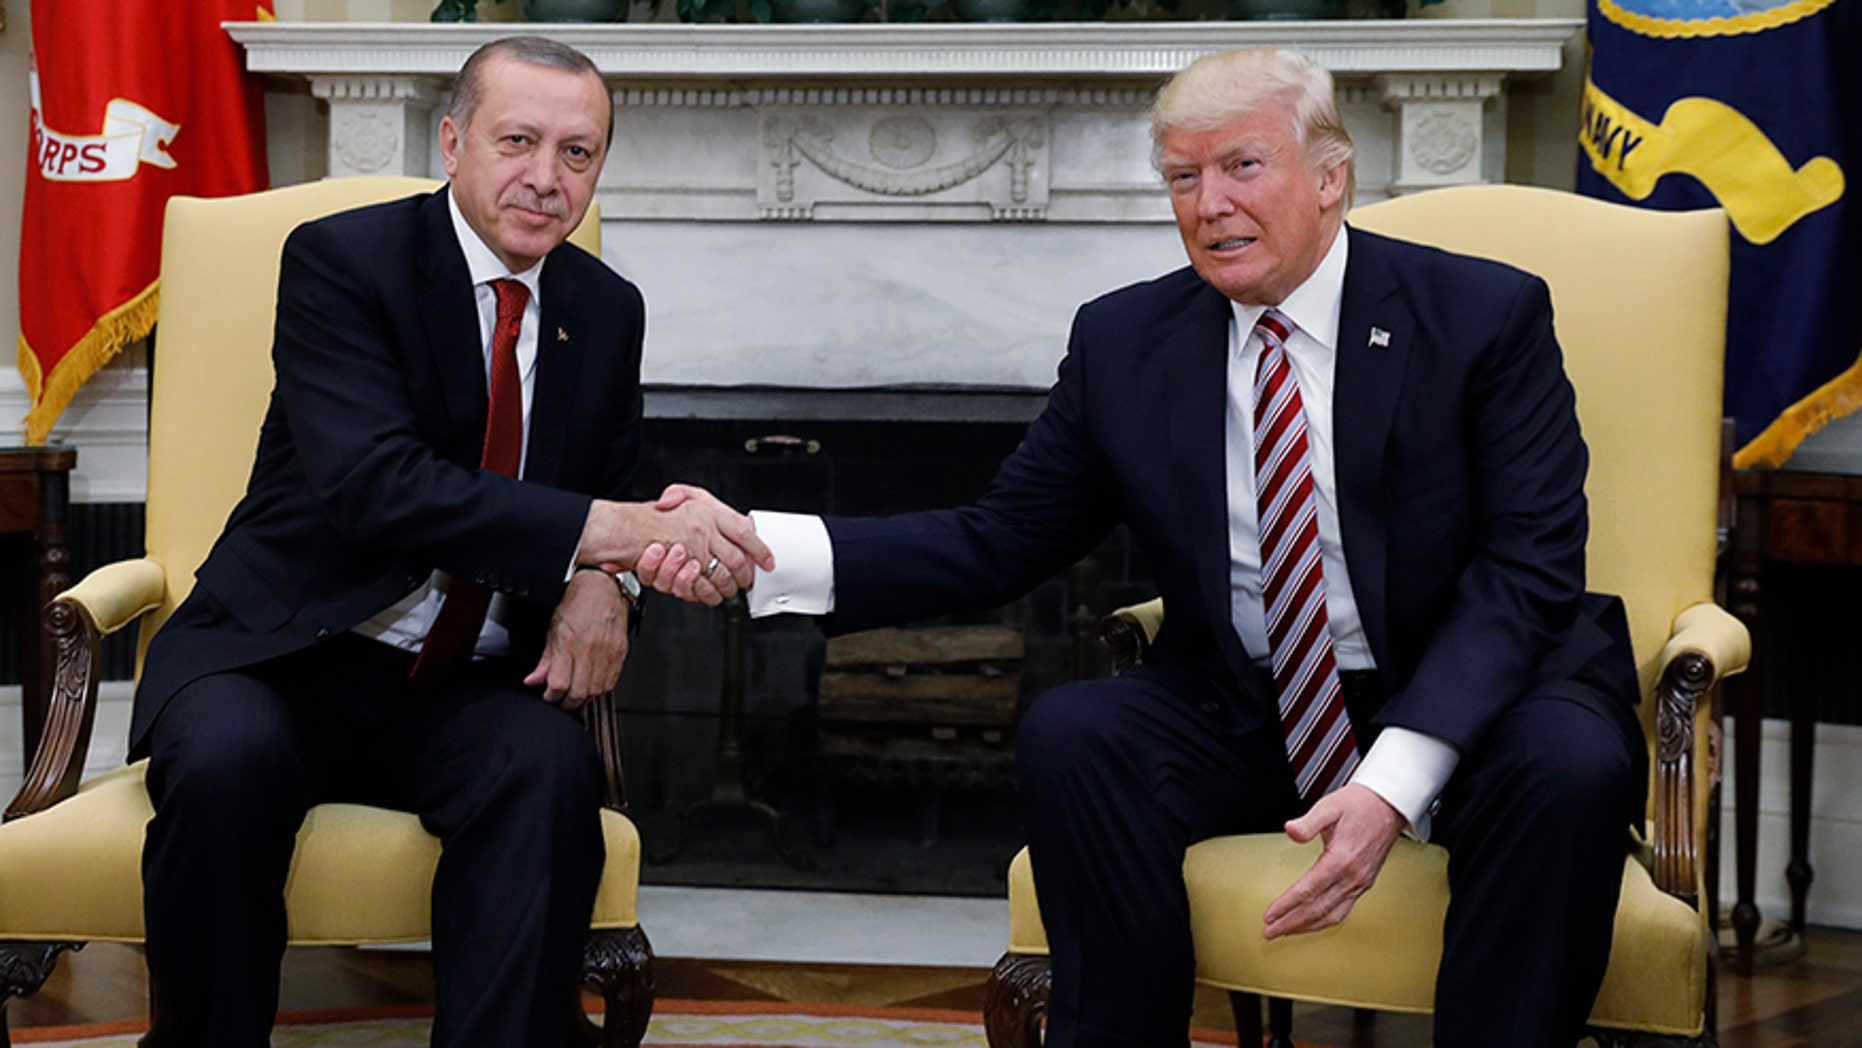 Turkey's President Recep Tayyip Erdogan with U.S President Donald Trump in the Oval Office of the White House, May 16, 2017.